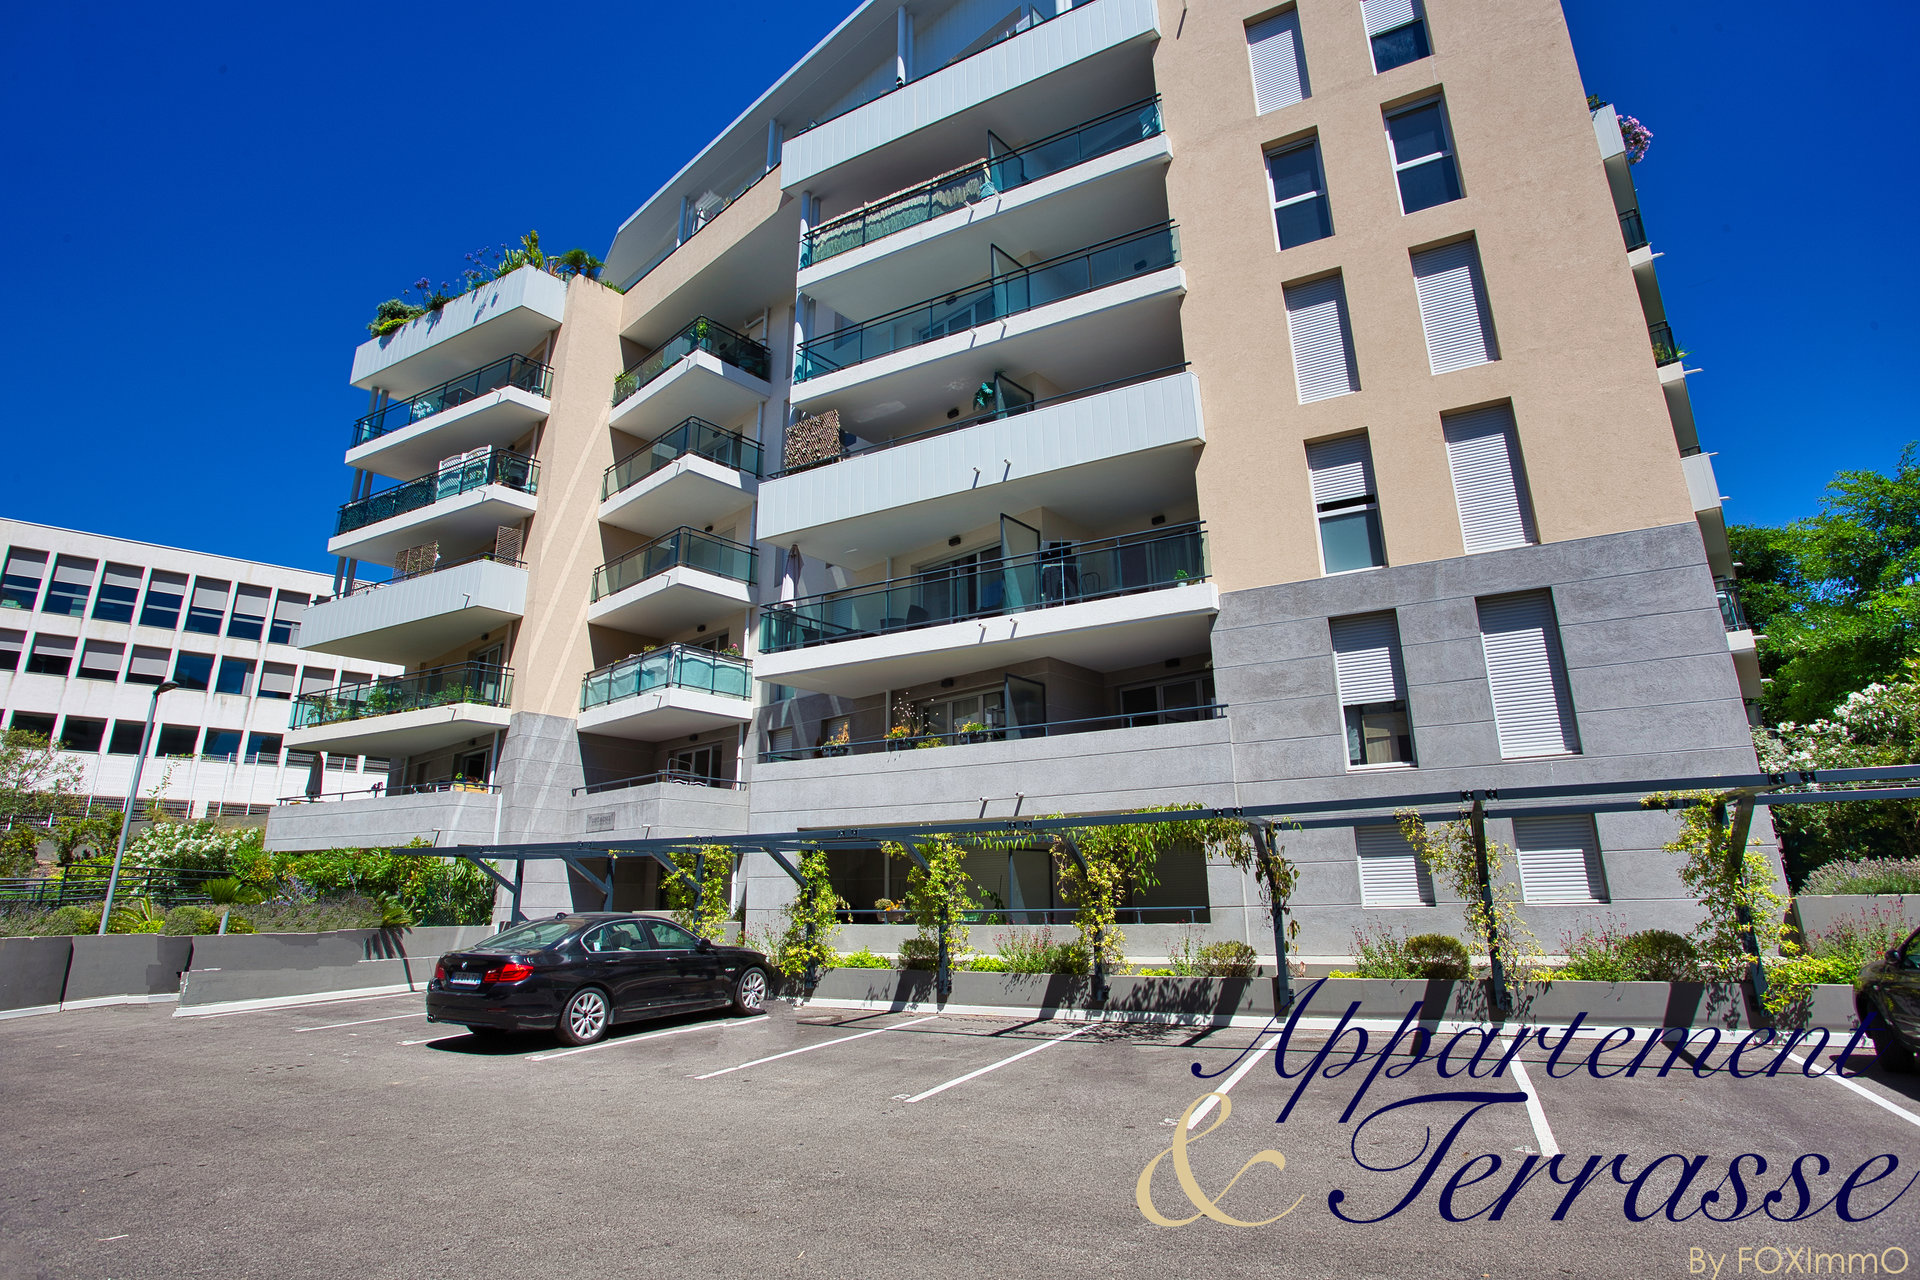 Apartment 2P 41 m² with south facing terrace and garage